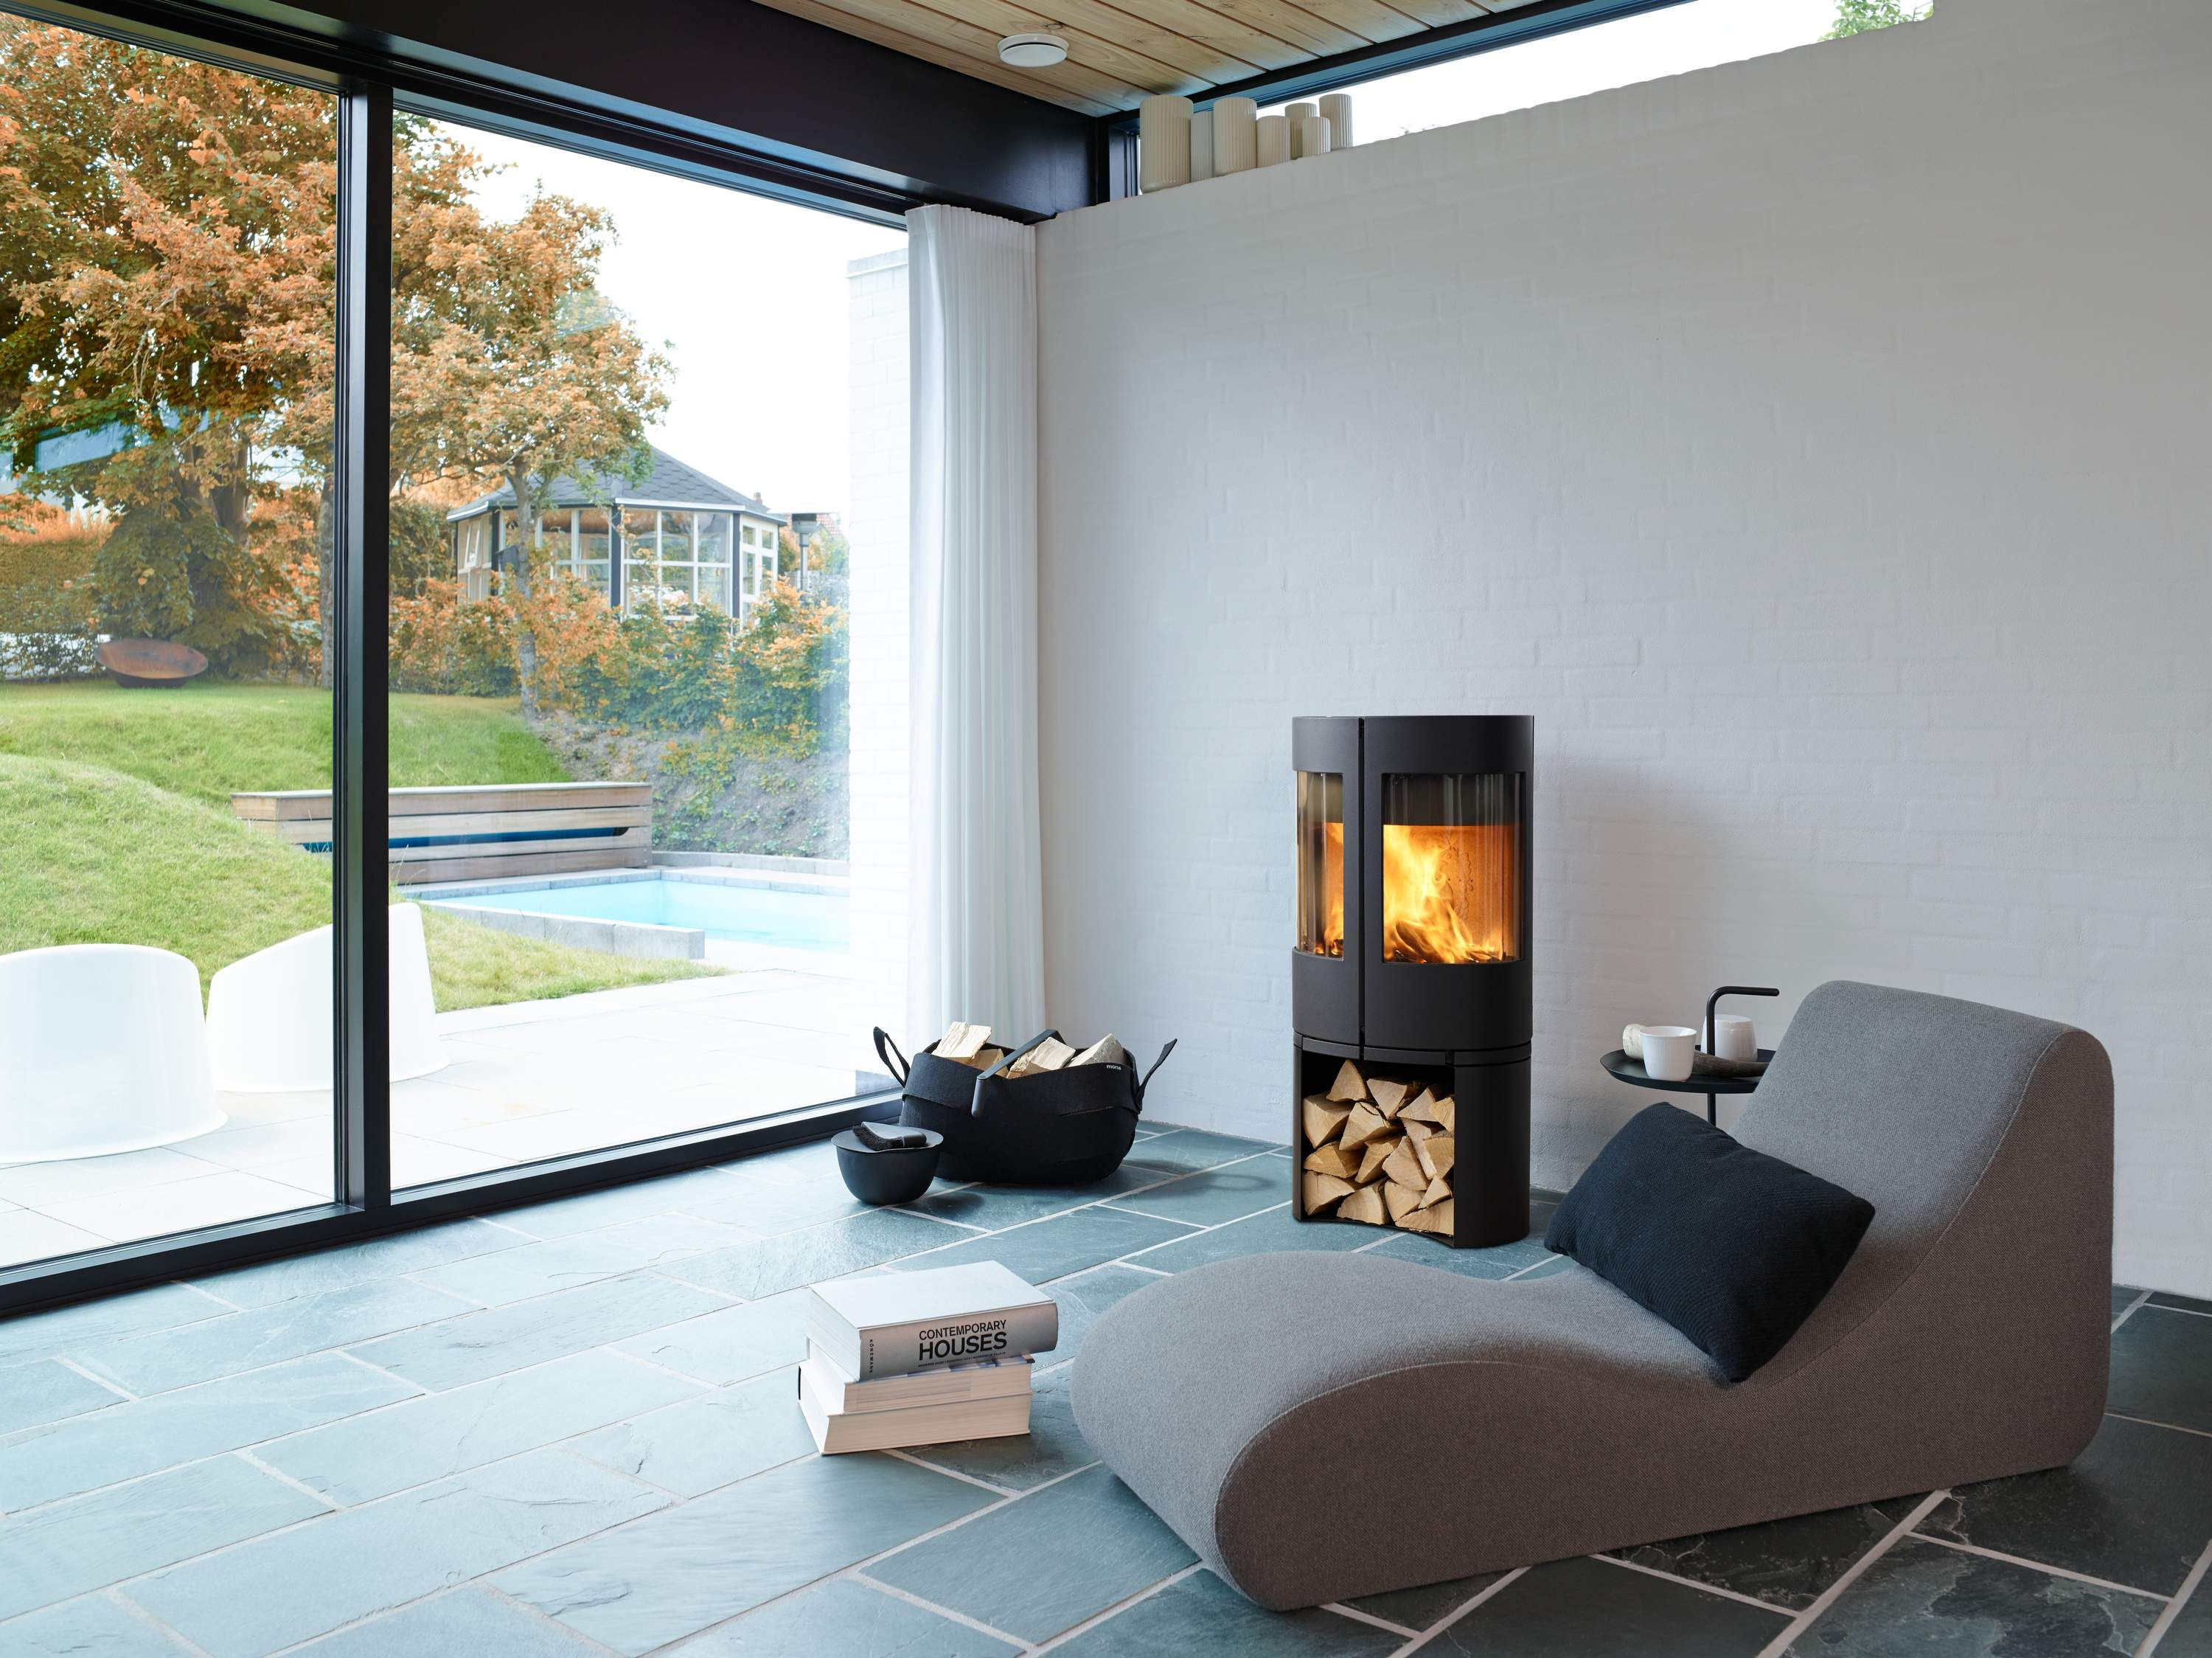 131 best Openhaard images on Pinterest | Fire places, Range and Stoves